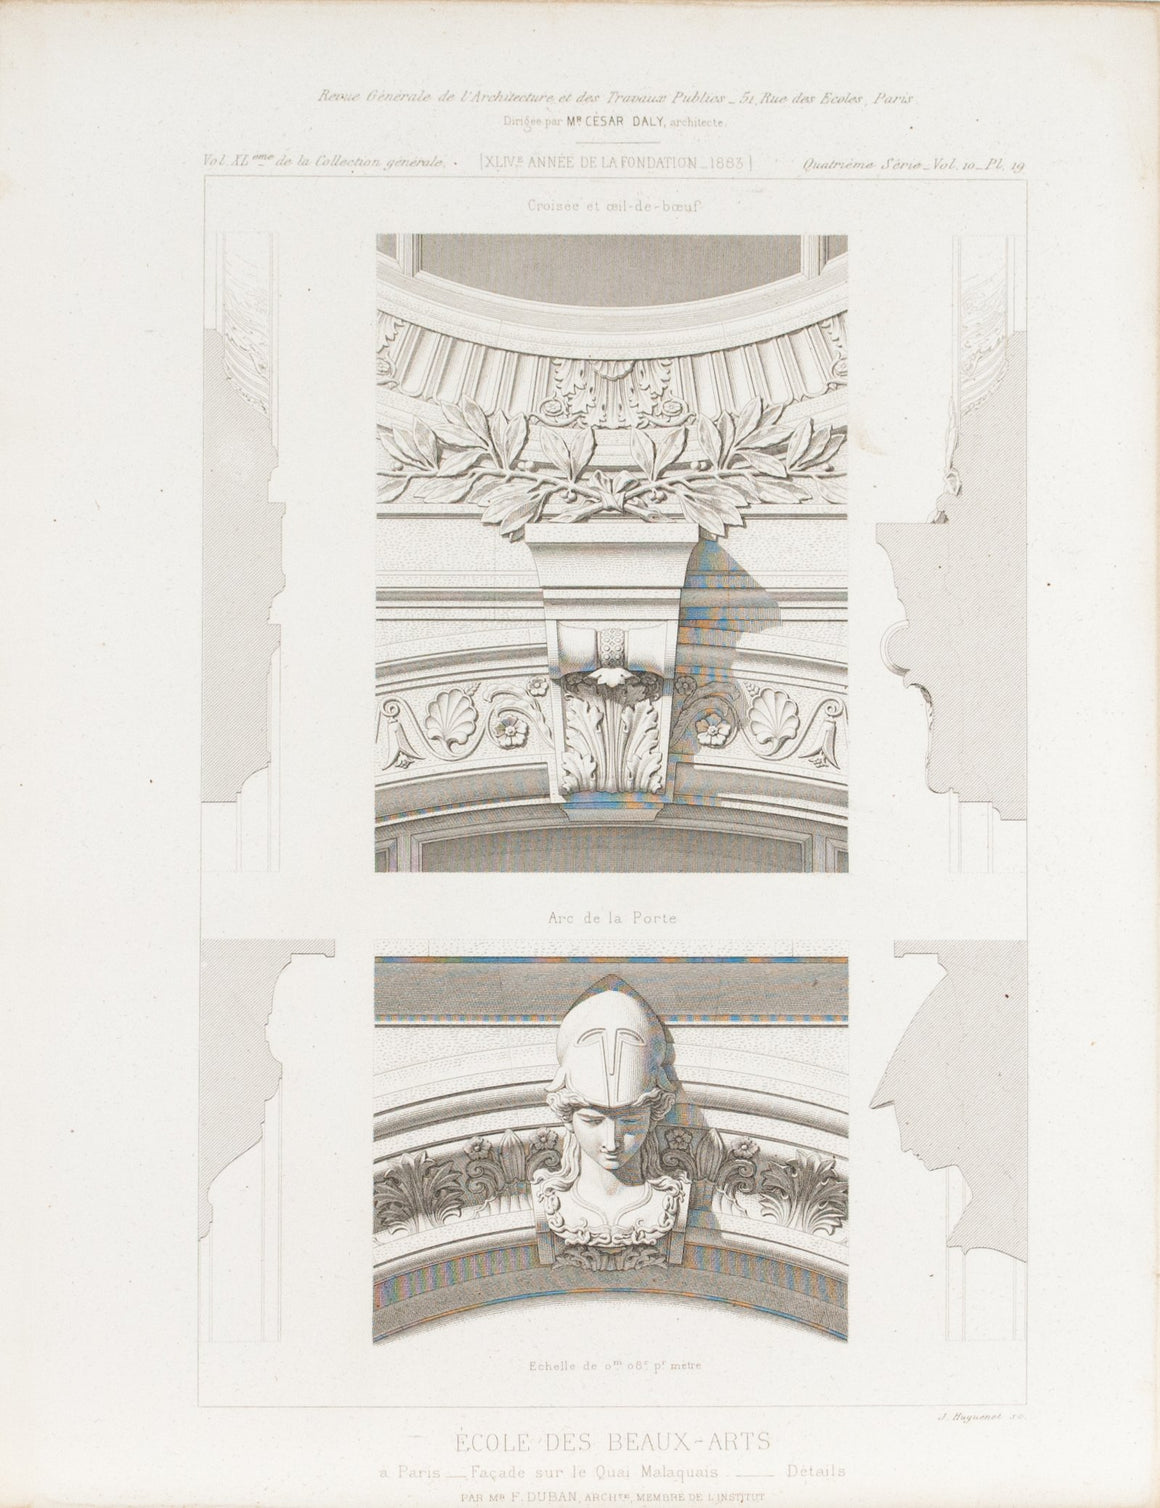 Arch Gate Architectural Design with Face Sculpture 1883 Architecture Print